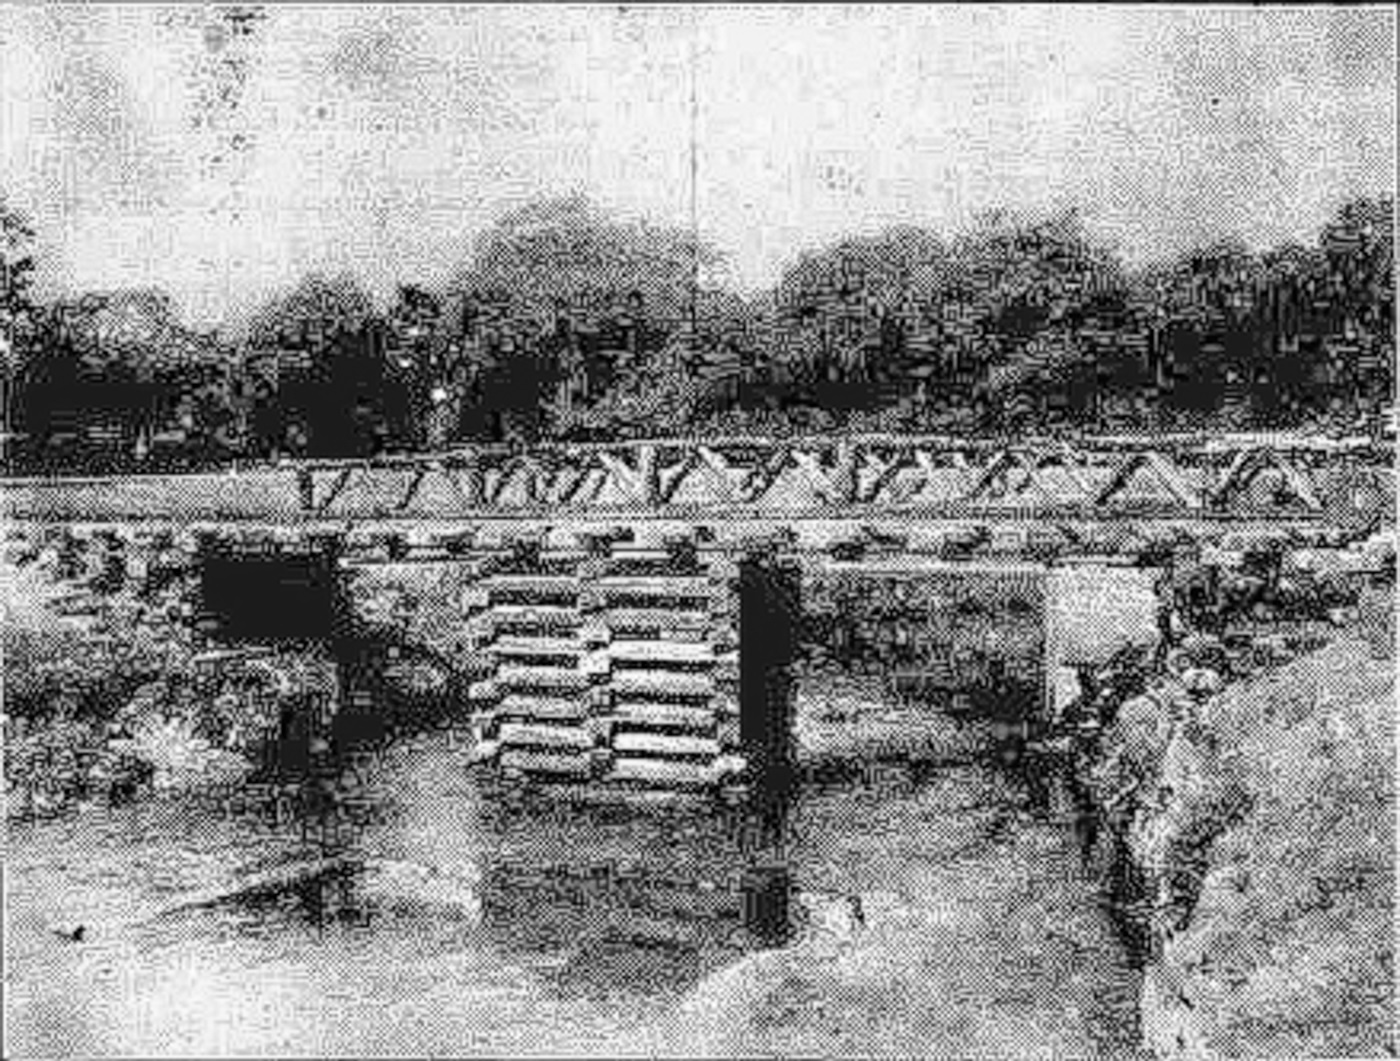 Witham railway bridge 1914